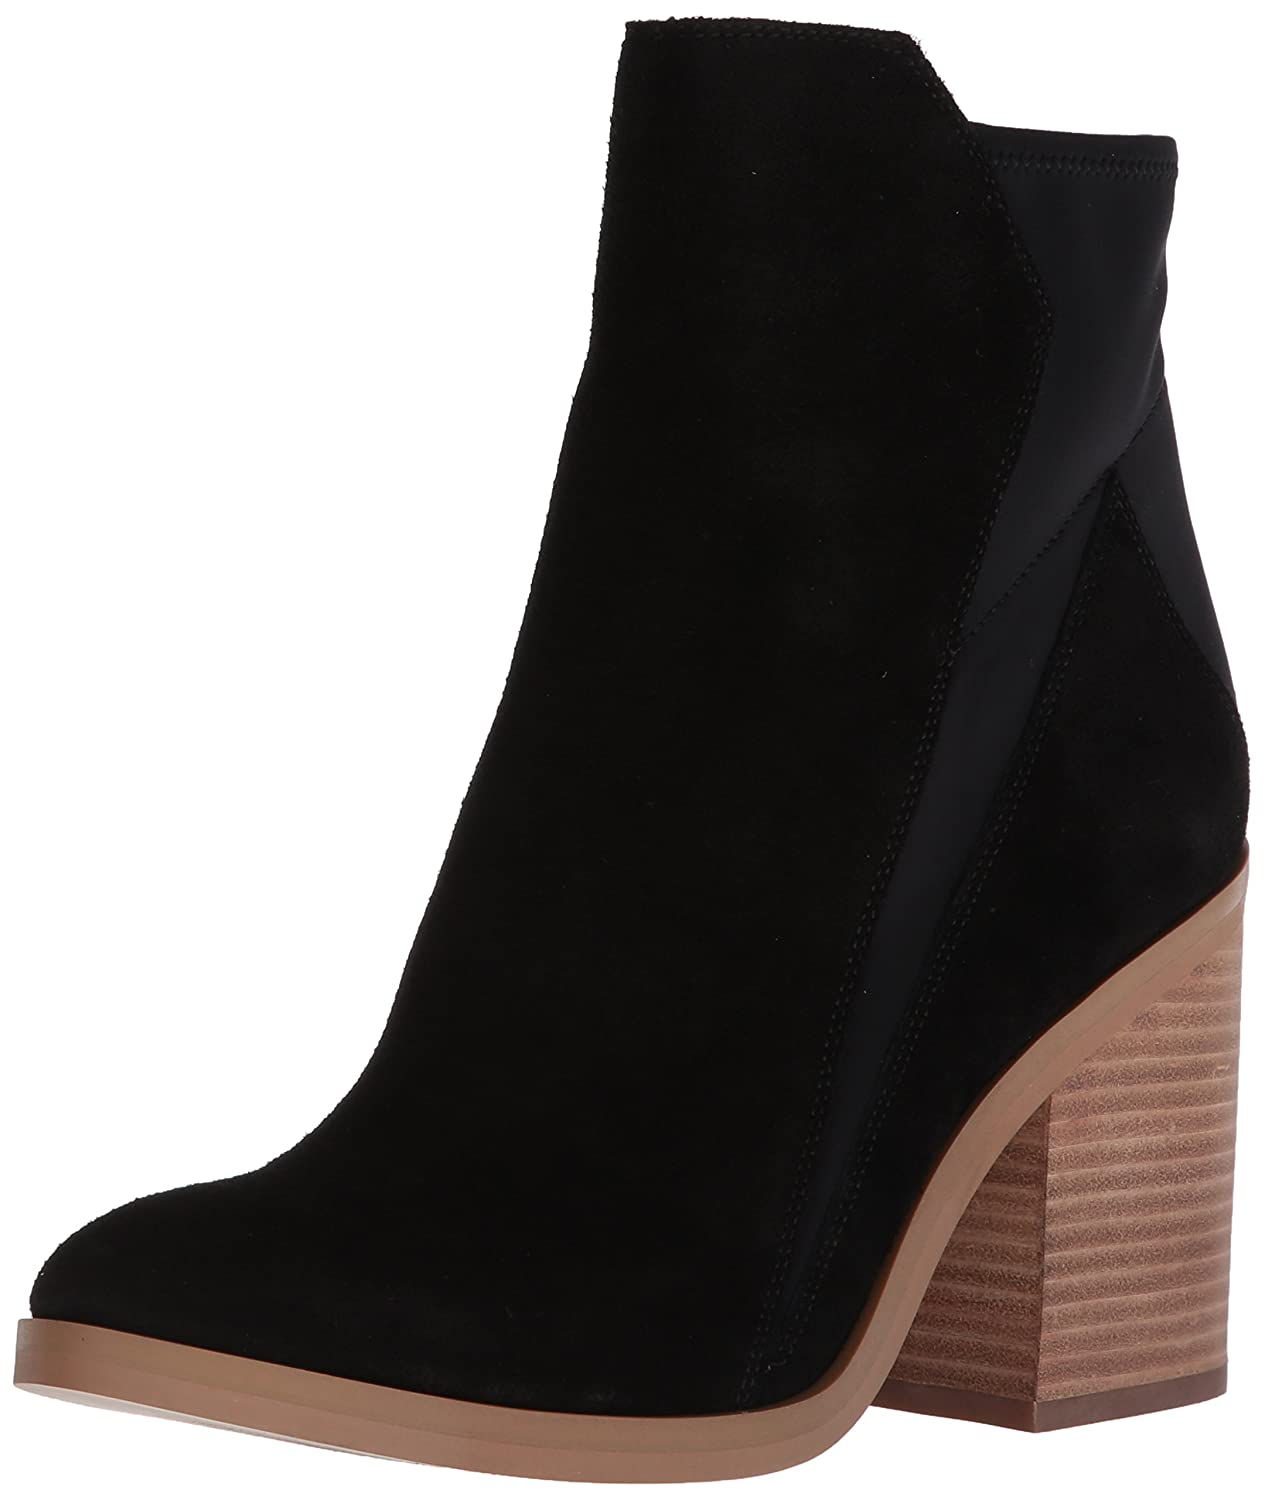 Katy Perry Women's The Caroline Ankle Boot B06XDN1KCT 8 B(M) US|Black